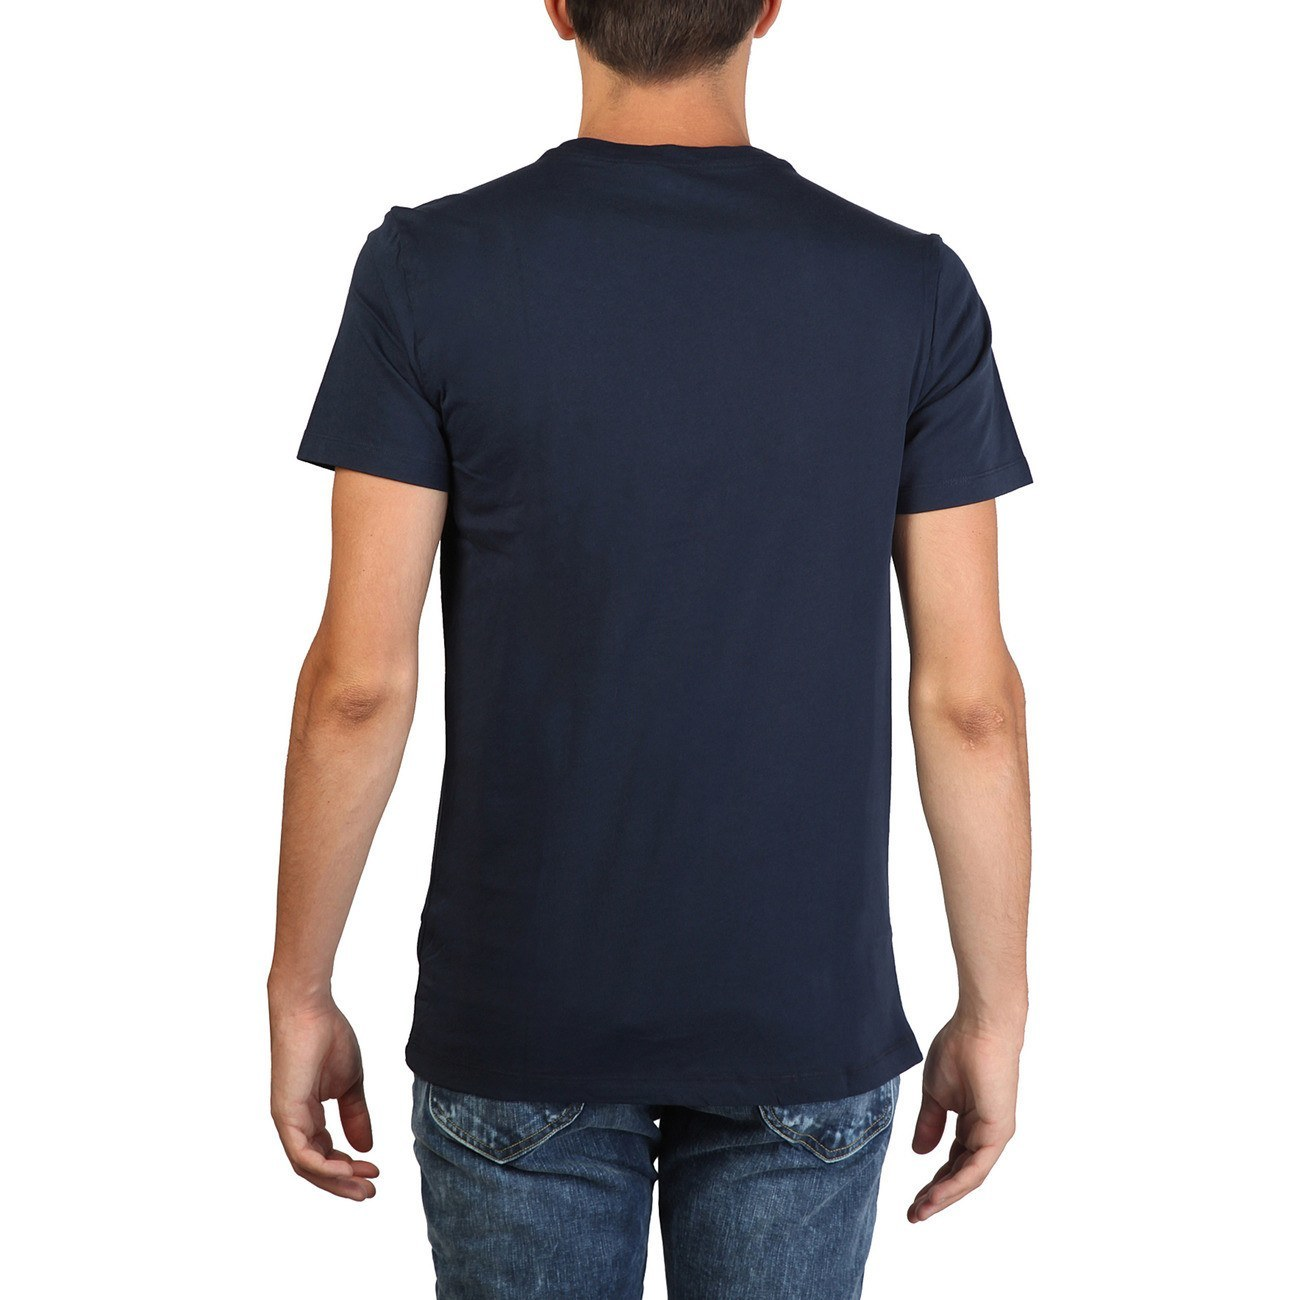 Lee - Print tshirt Slim fit - Blue - Ninostyle